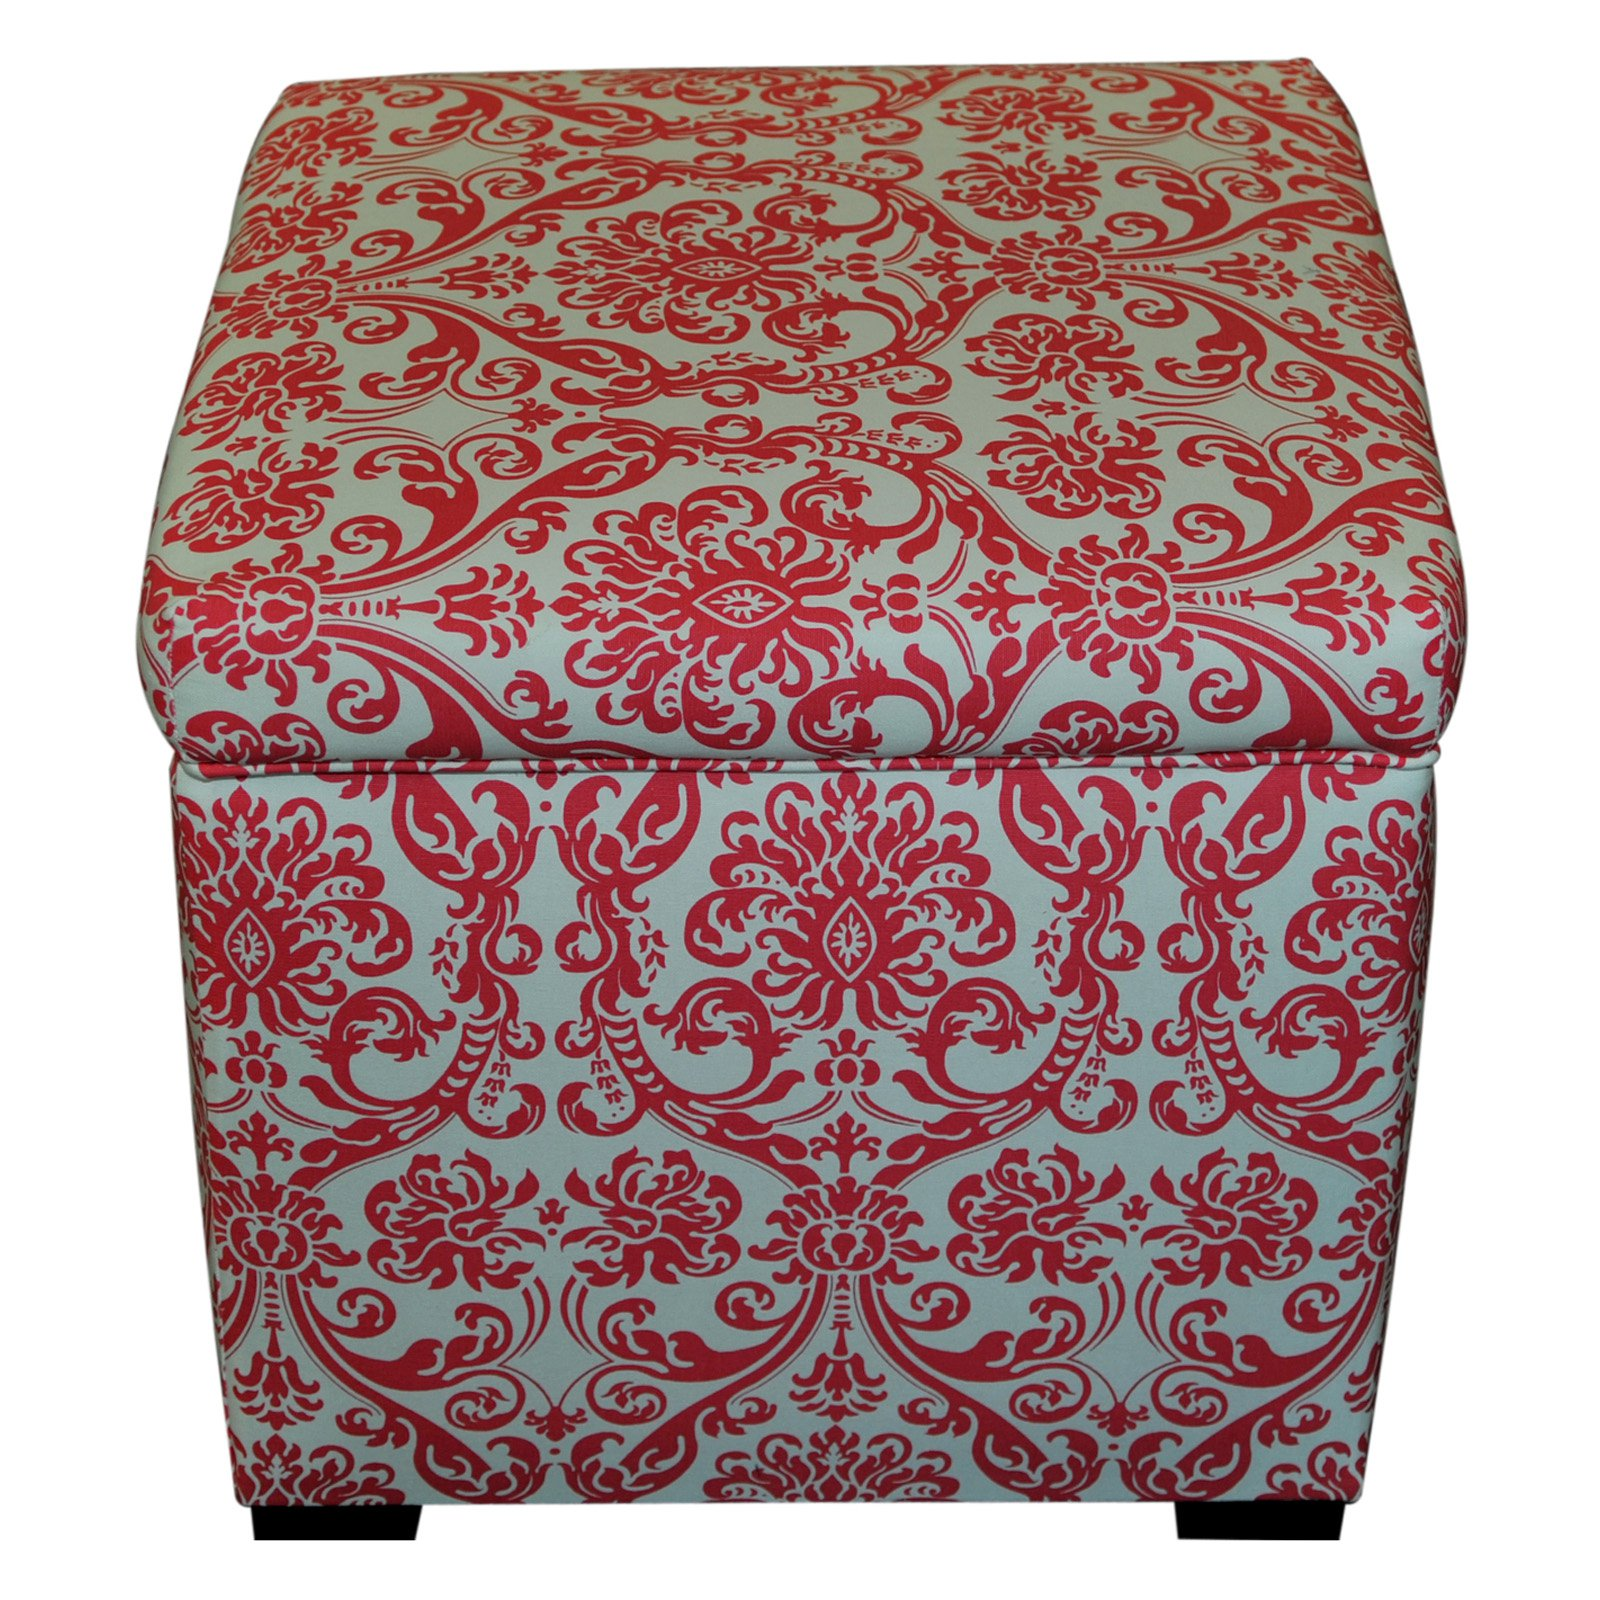 Sole Designs Tami Collection Abigail Series Upholstered Storage Ottoman